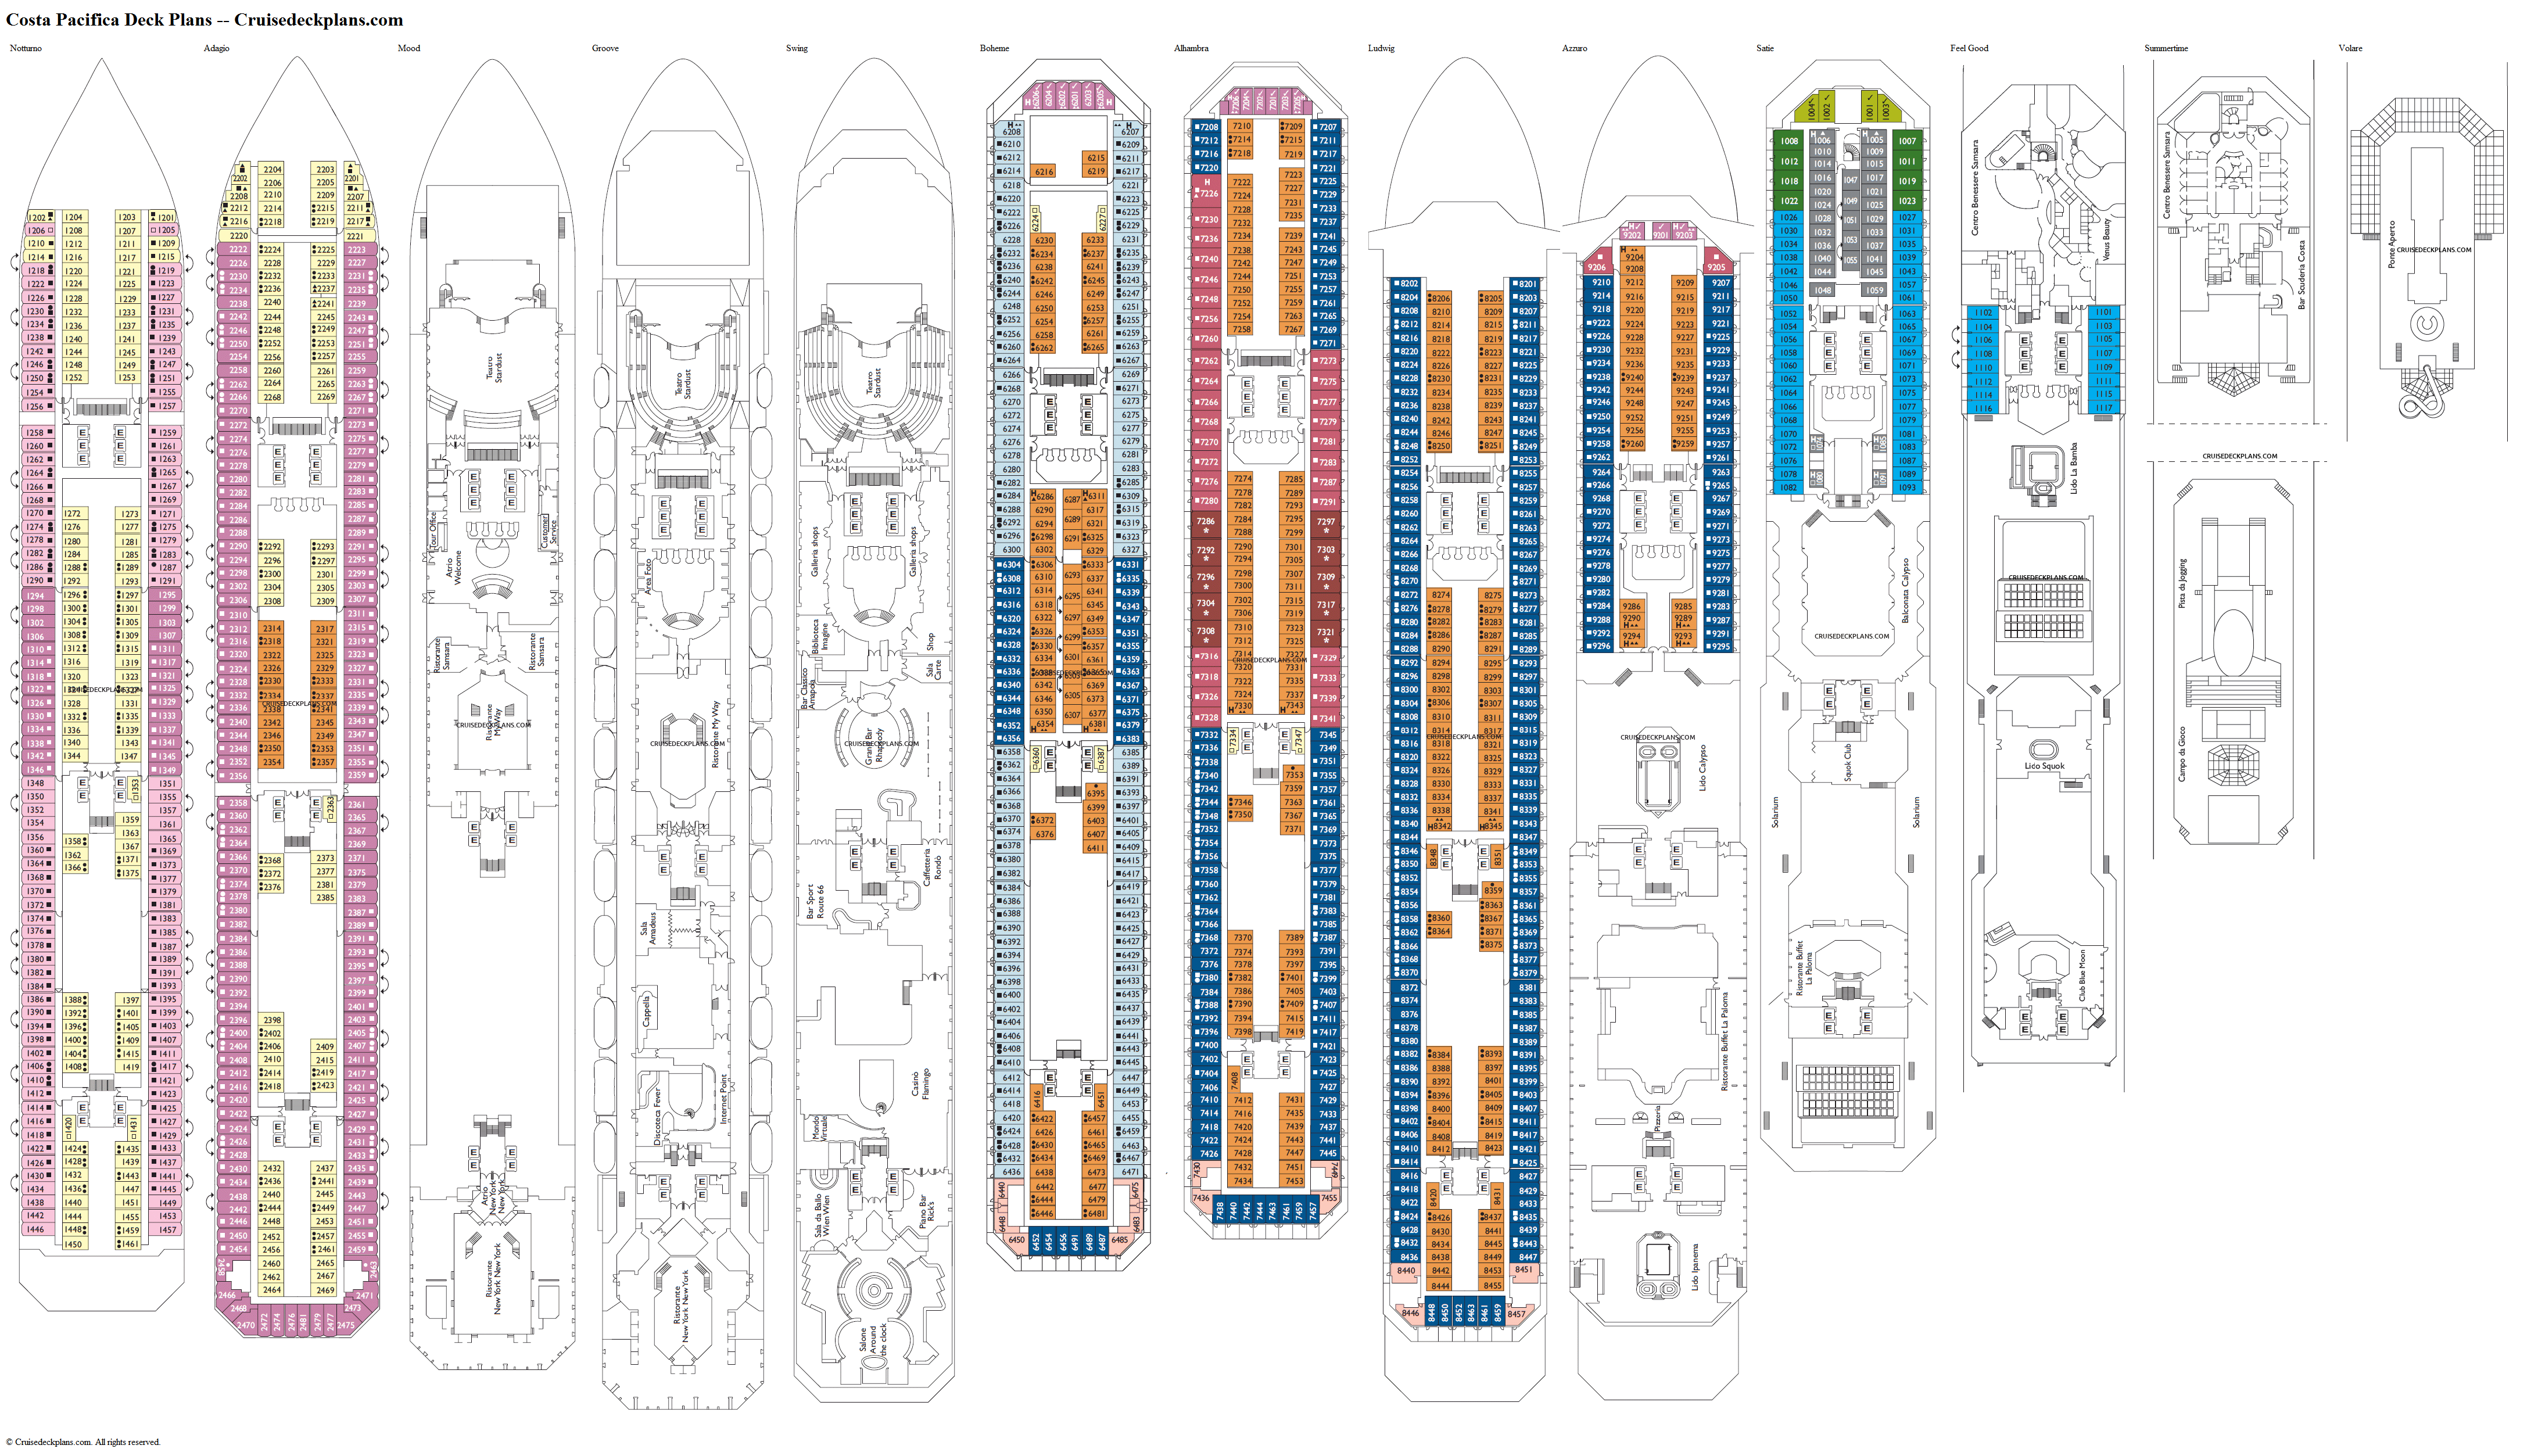 Costa Pacifica deck plans image